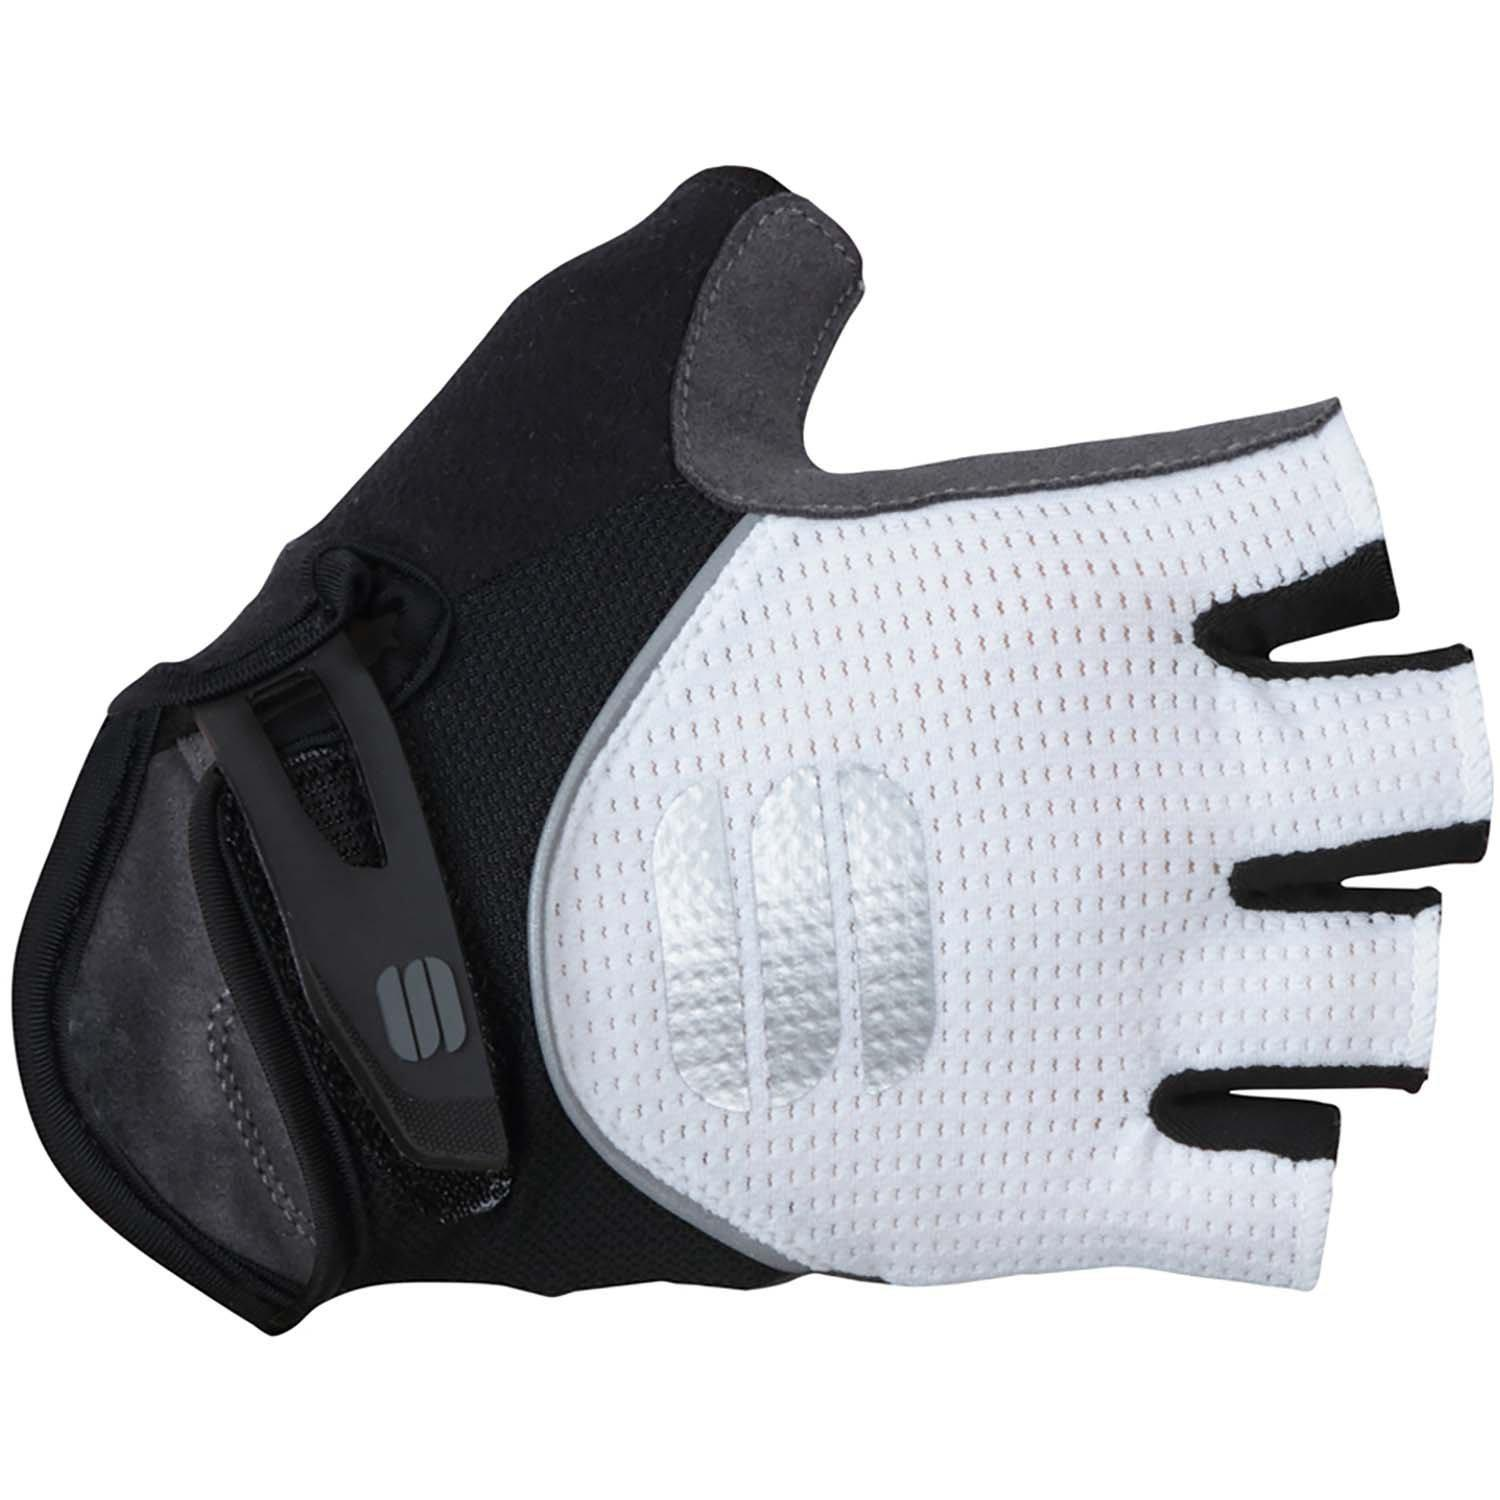 Sportful-Sportful Neo Women's Gloves-White-XS-SF020641011-saddleback-elite-performance-cycling